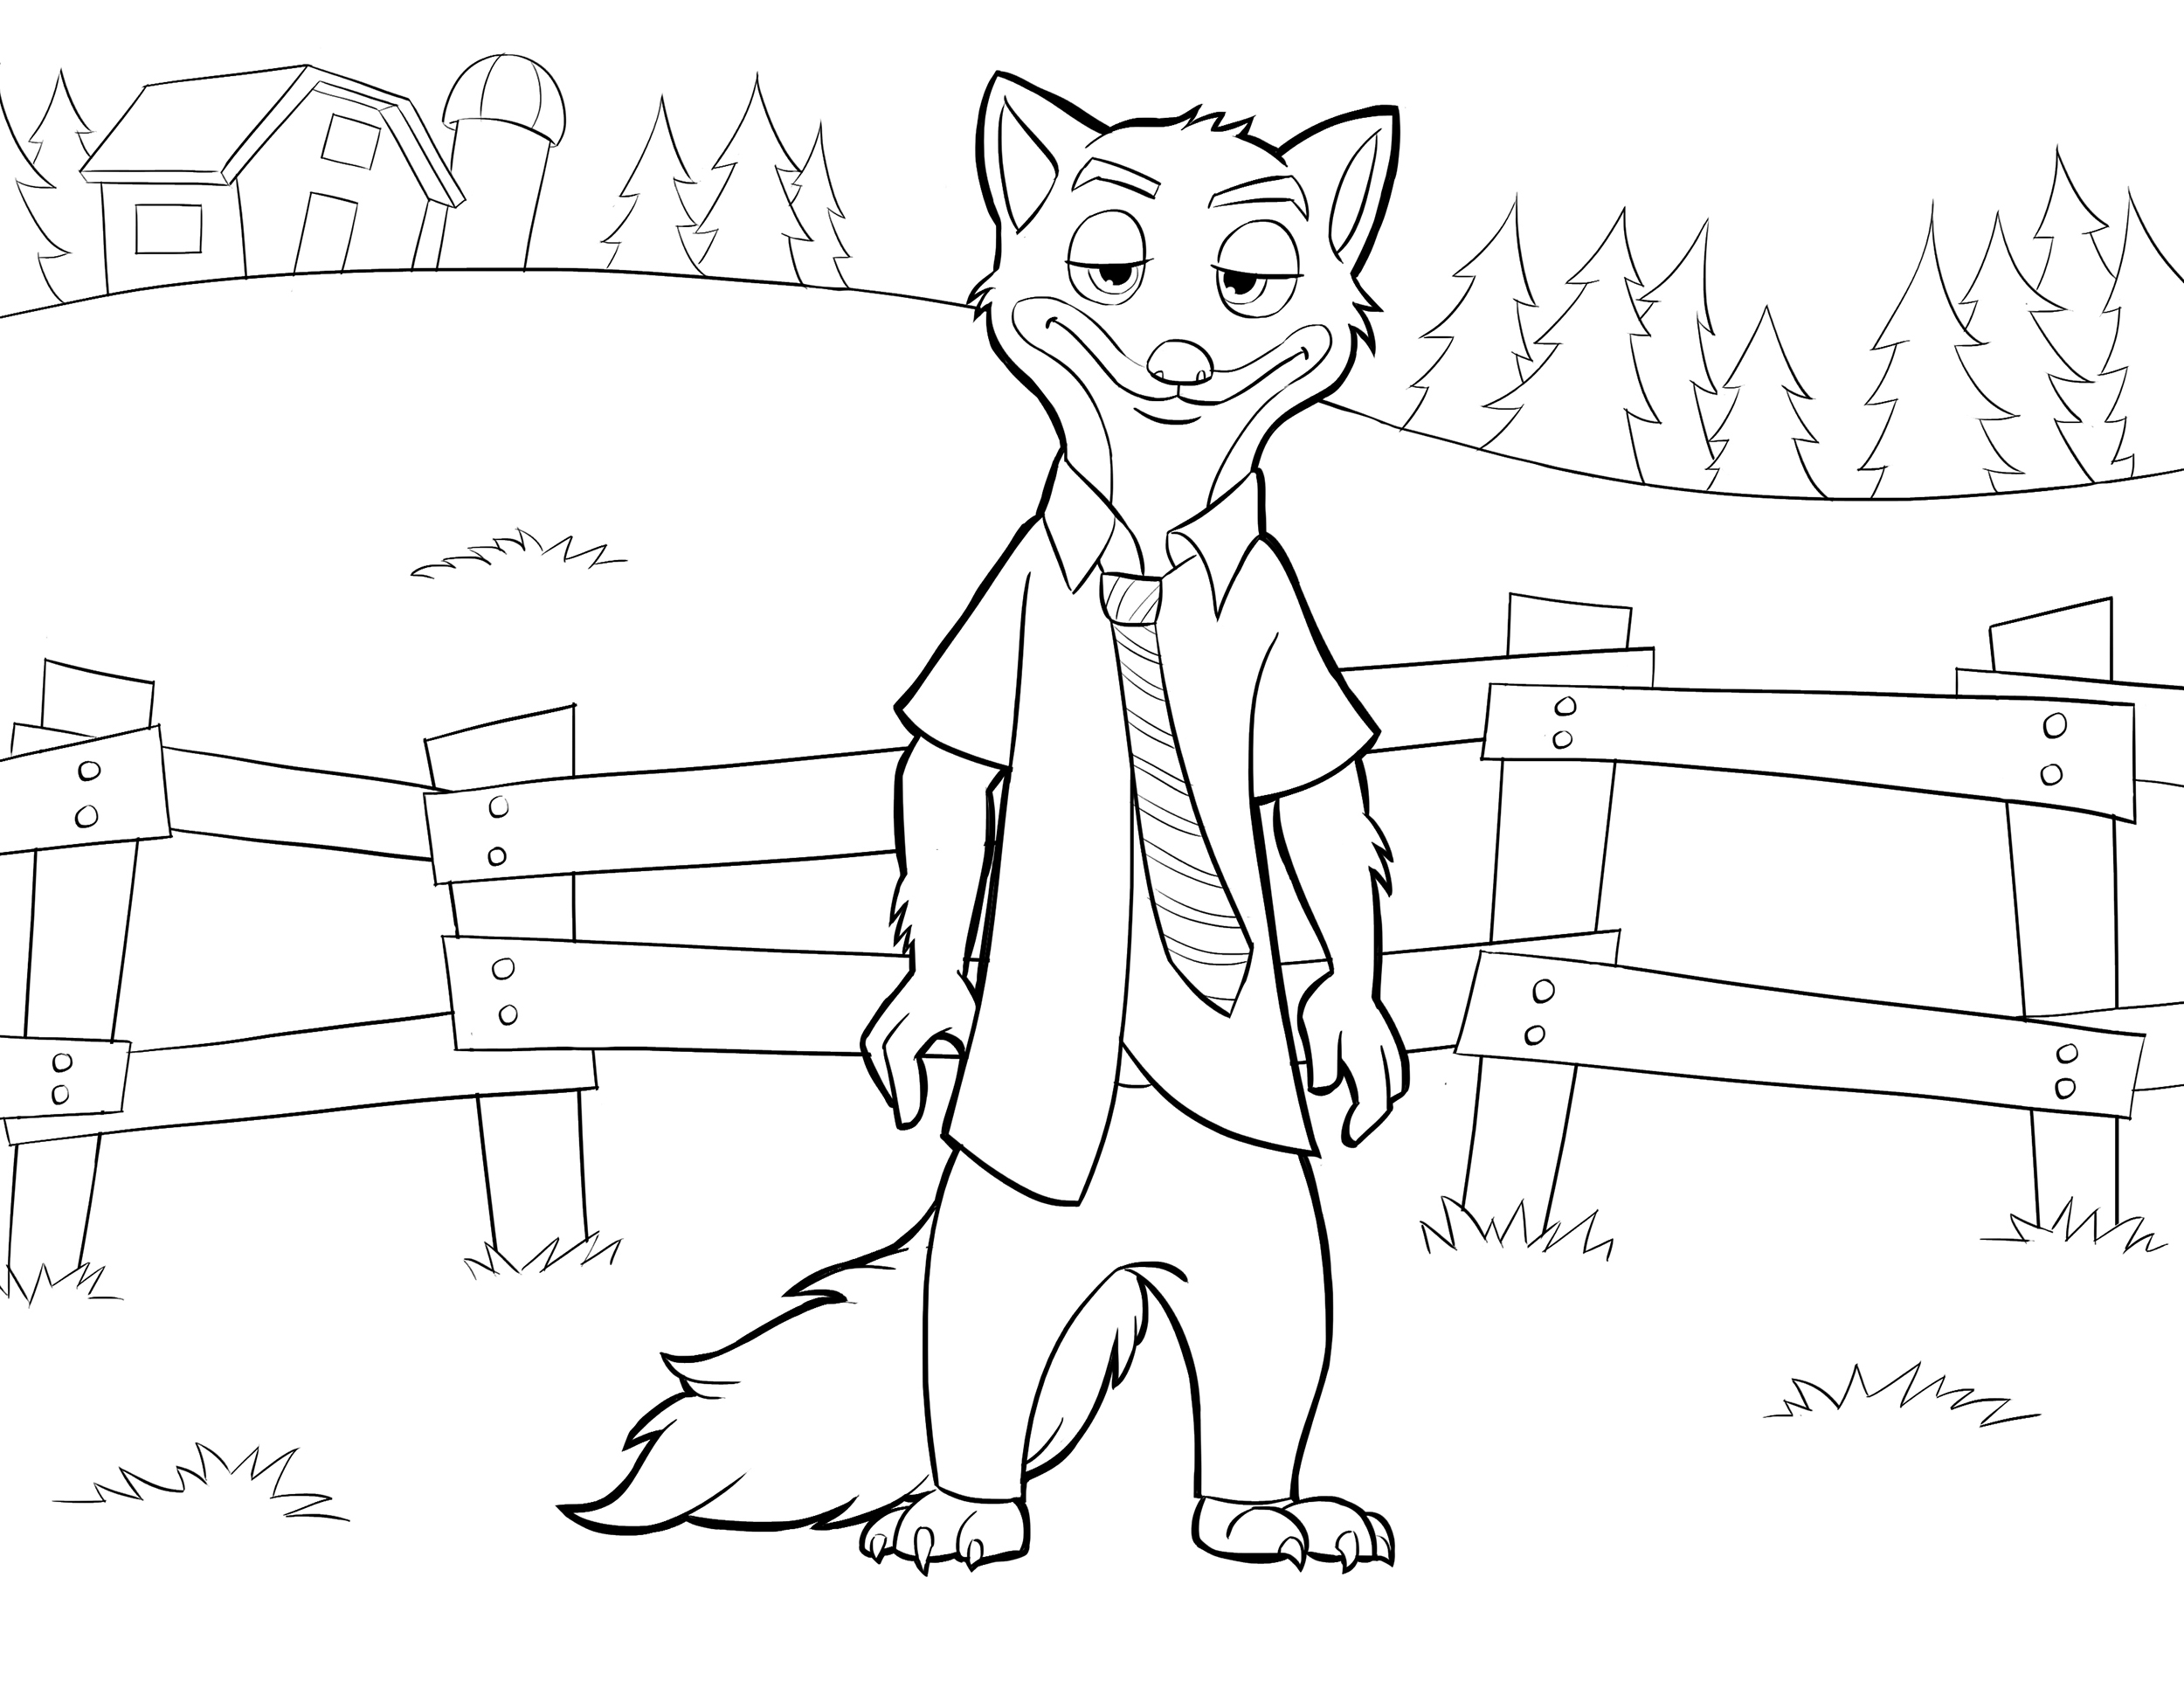 Zootopia coloring page to download : Nick Wilde with background